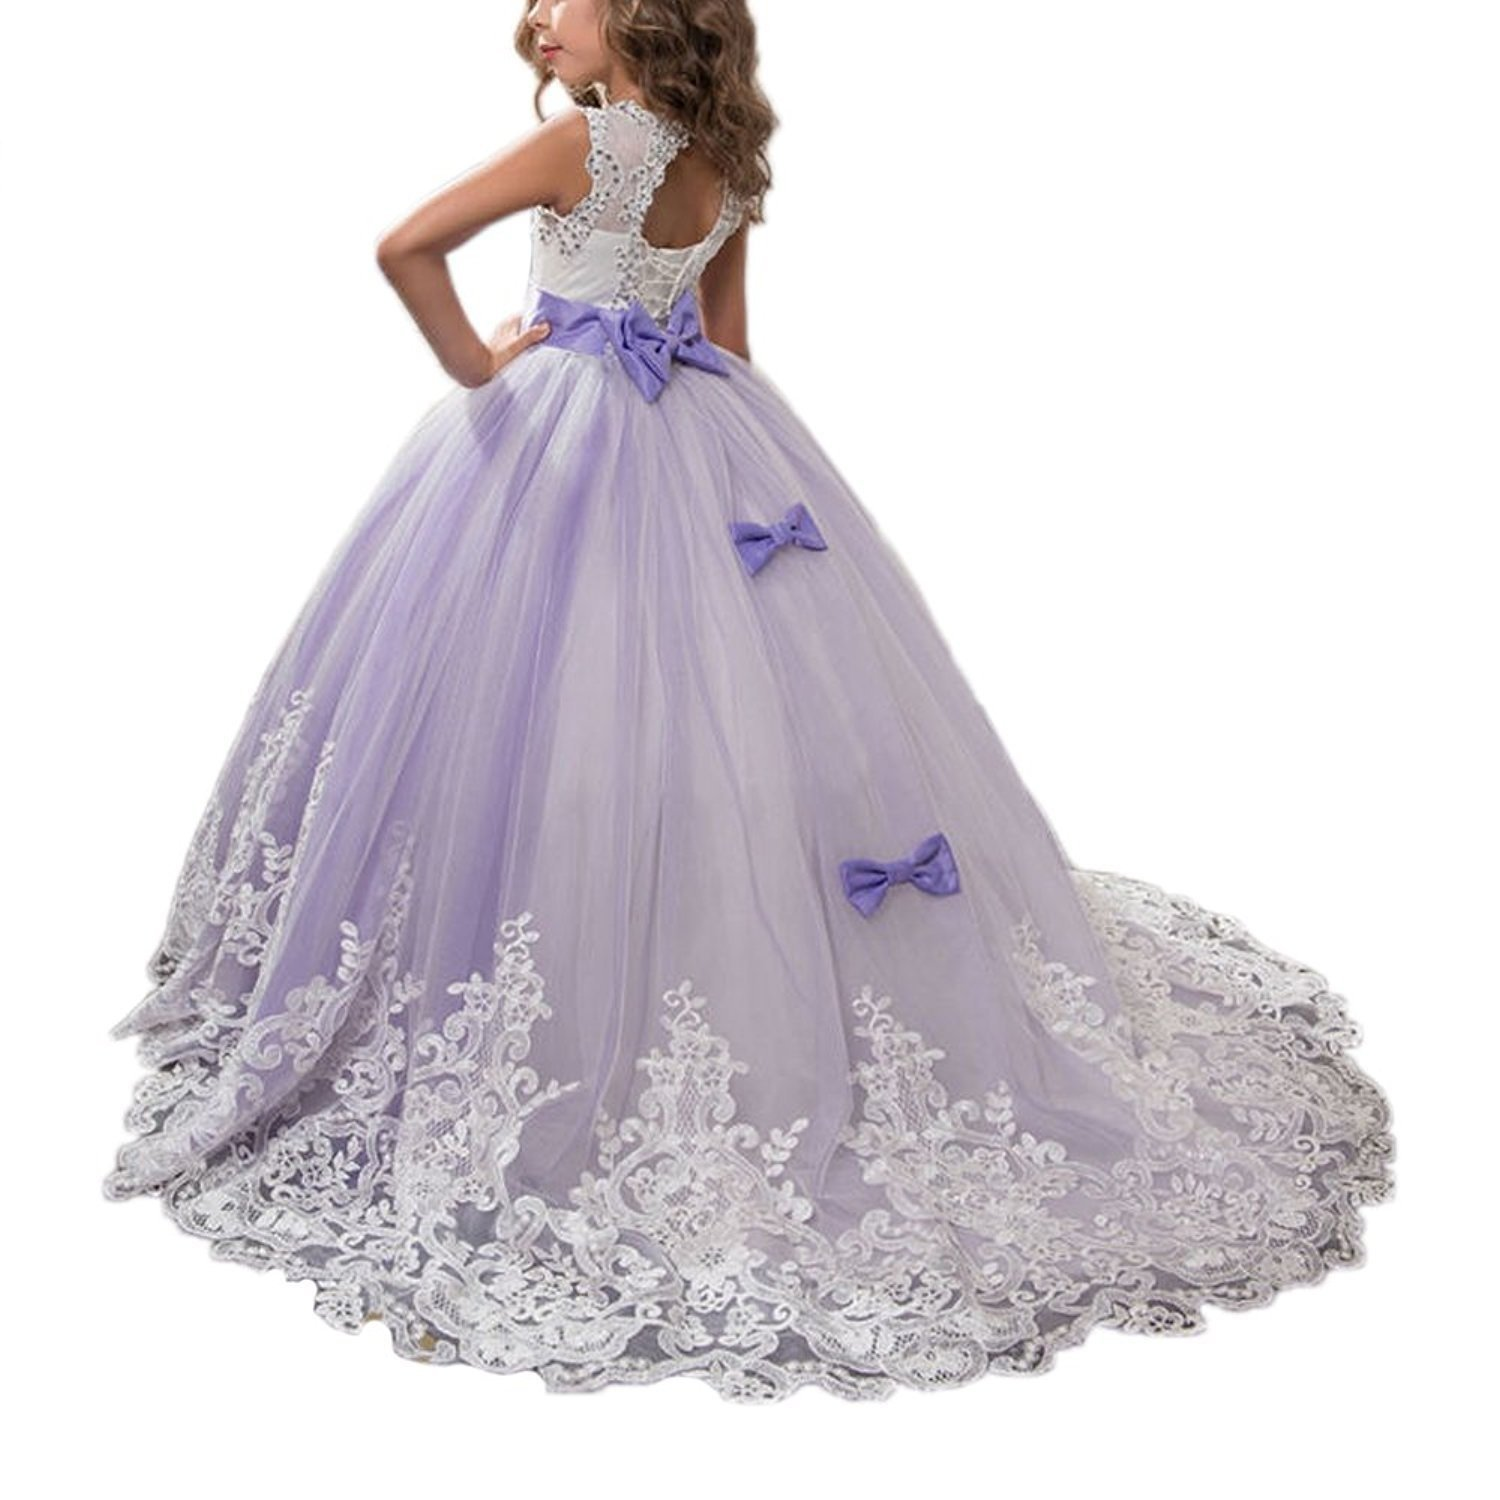 Amazon.com: Portsvy Lace Princess Long Girls Pageant Dresses Kids Prom Puffy Tulle Ball Gown: Clothing